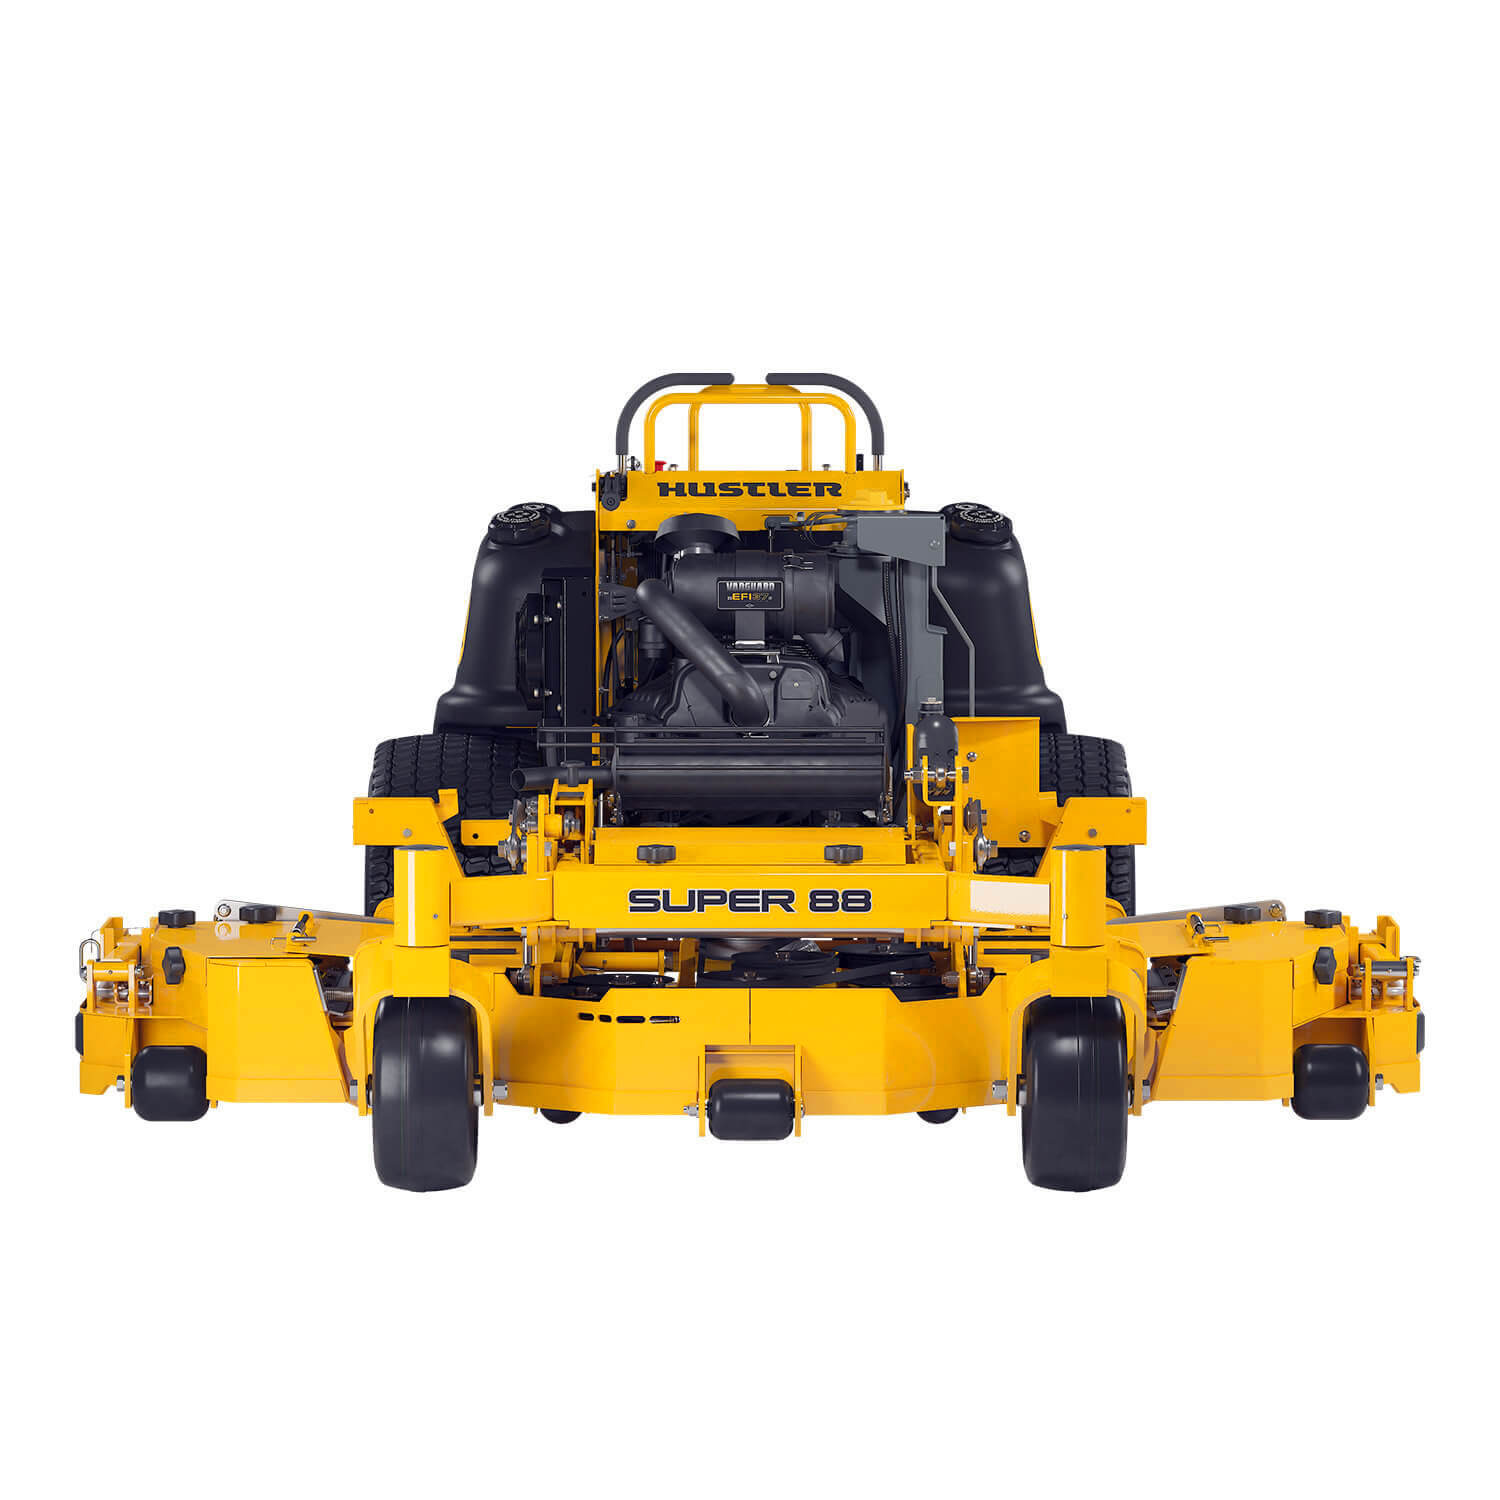 Image of the front of a yellow stand-on mower with fold out wings attached to the deck